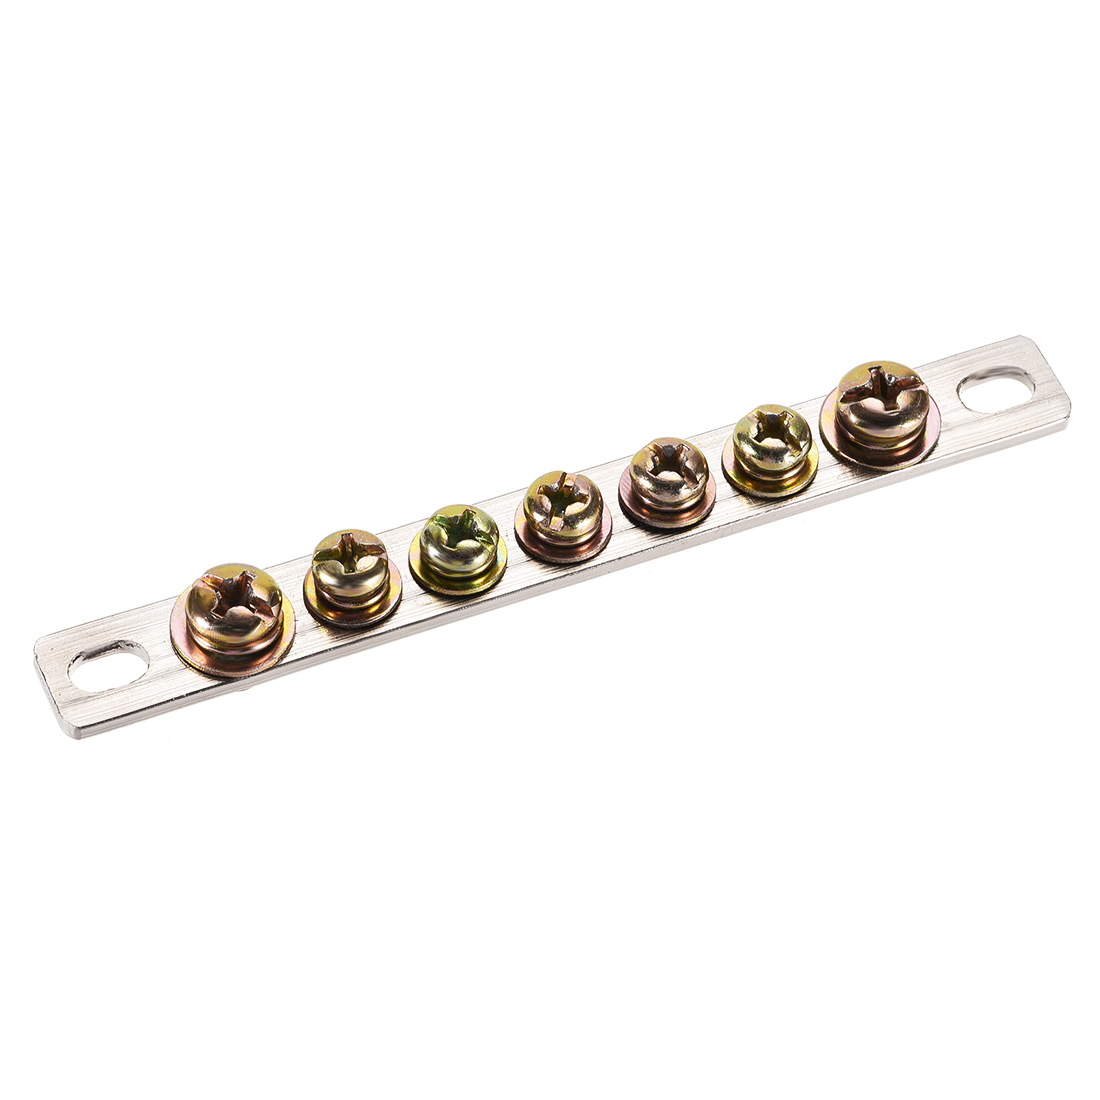 7 Positions Single Row Straight Copper Screw Terminal Block Connector Bar